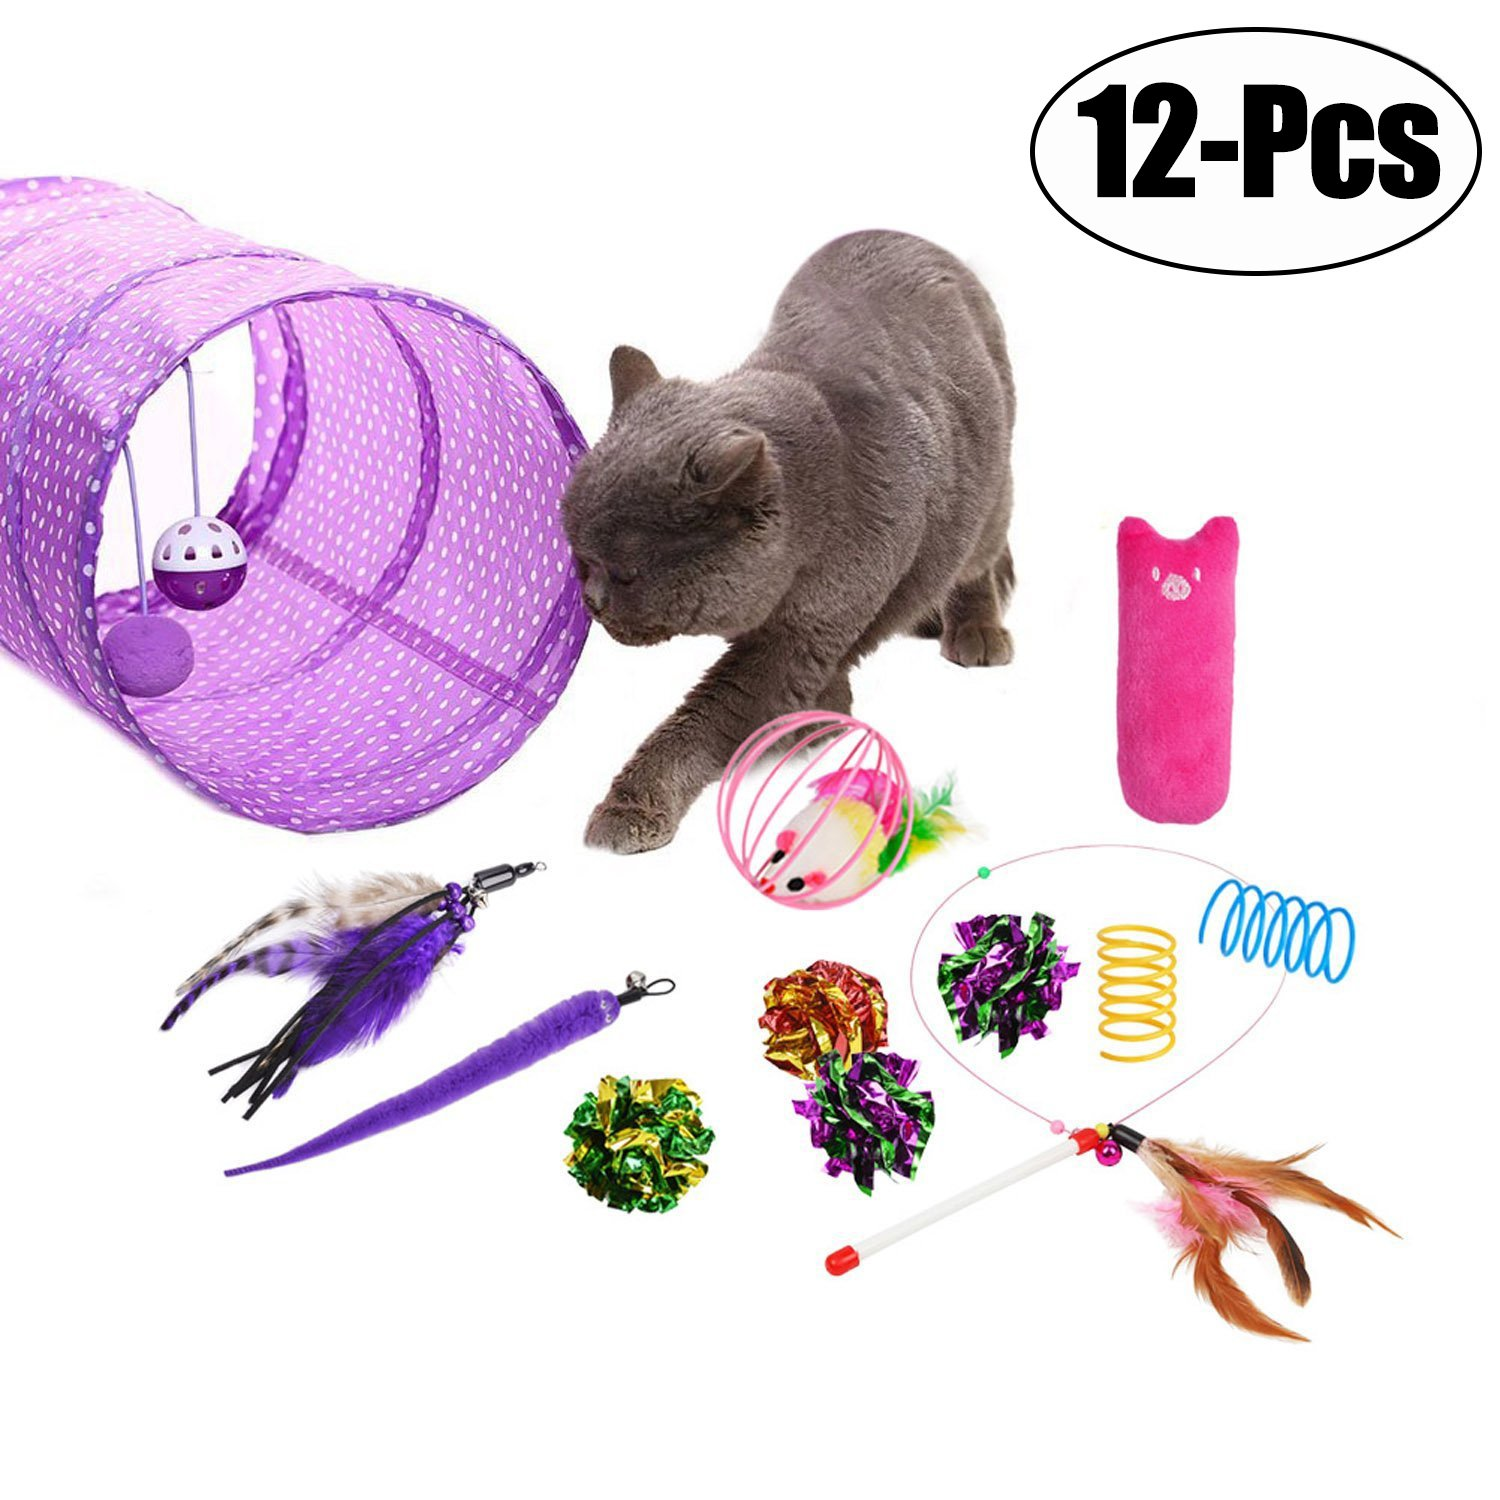 Cat Toys, Legendog 12Pcs Cat Kitten Interactive Feather Toy Teaser Wand with 2 Worm Refills Cat Tunnels Toys Crinkle Balls Set